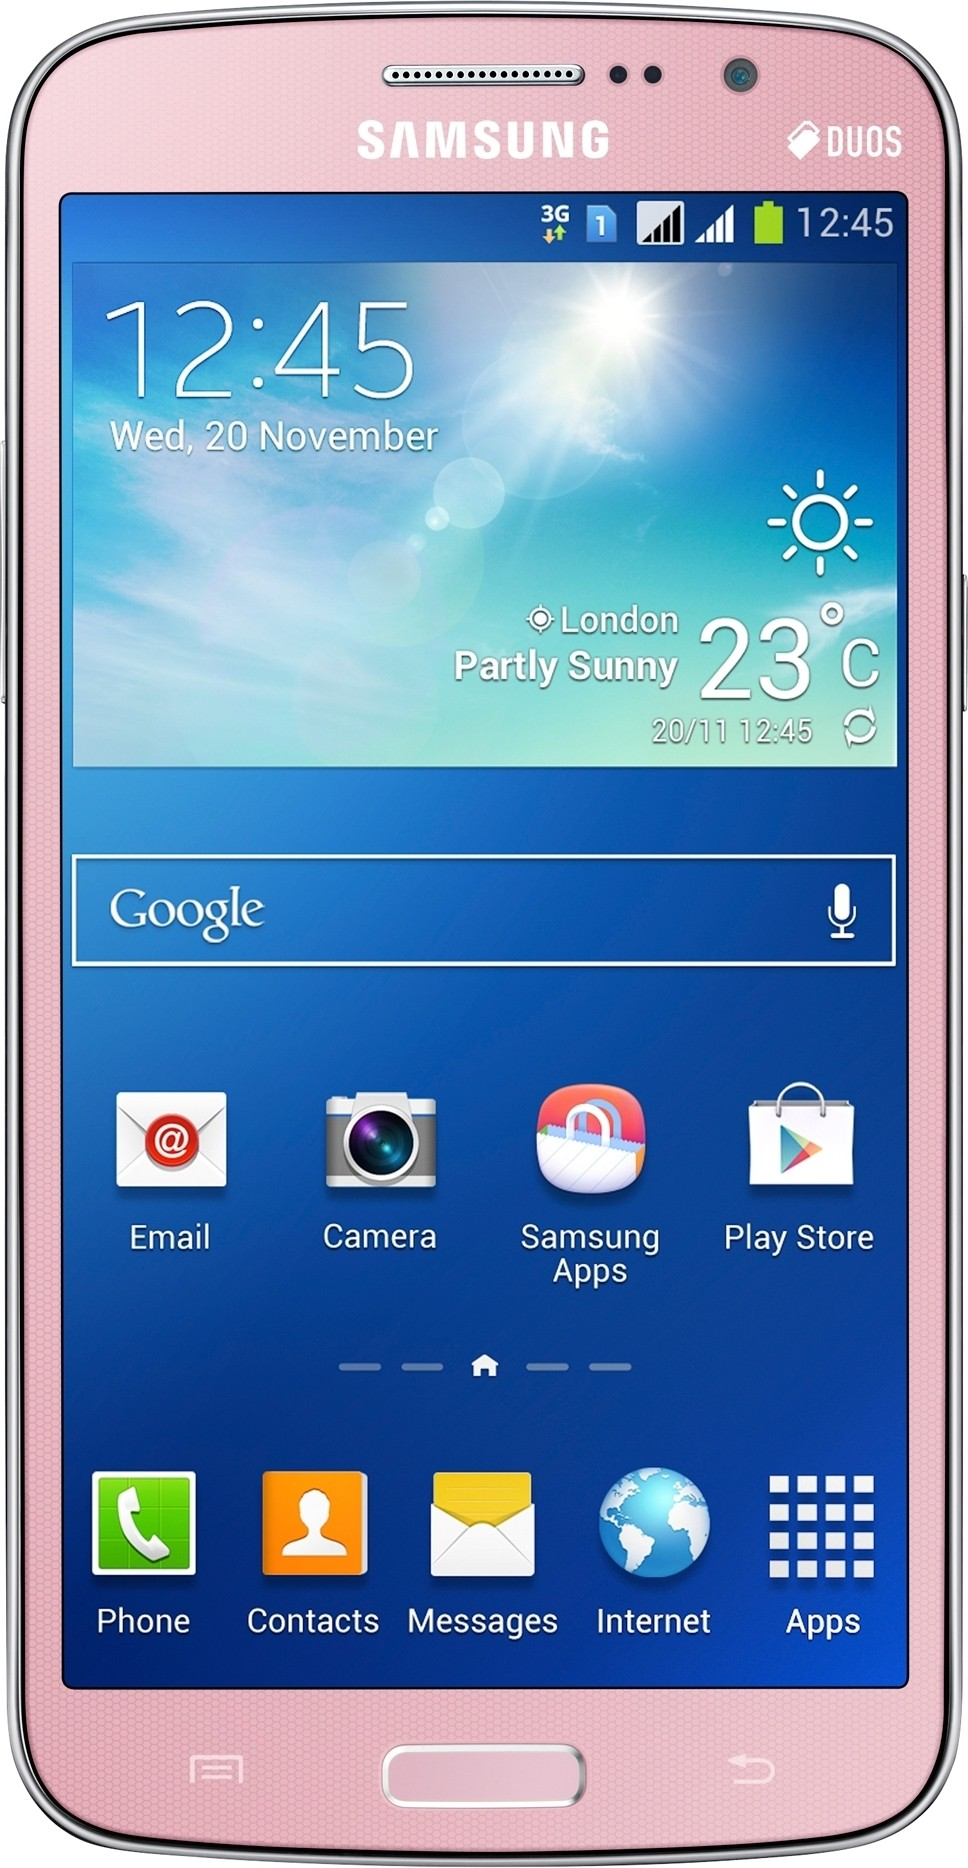 Samsung Galaxy Grand 2 (1.5GB RAM, 8GB)